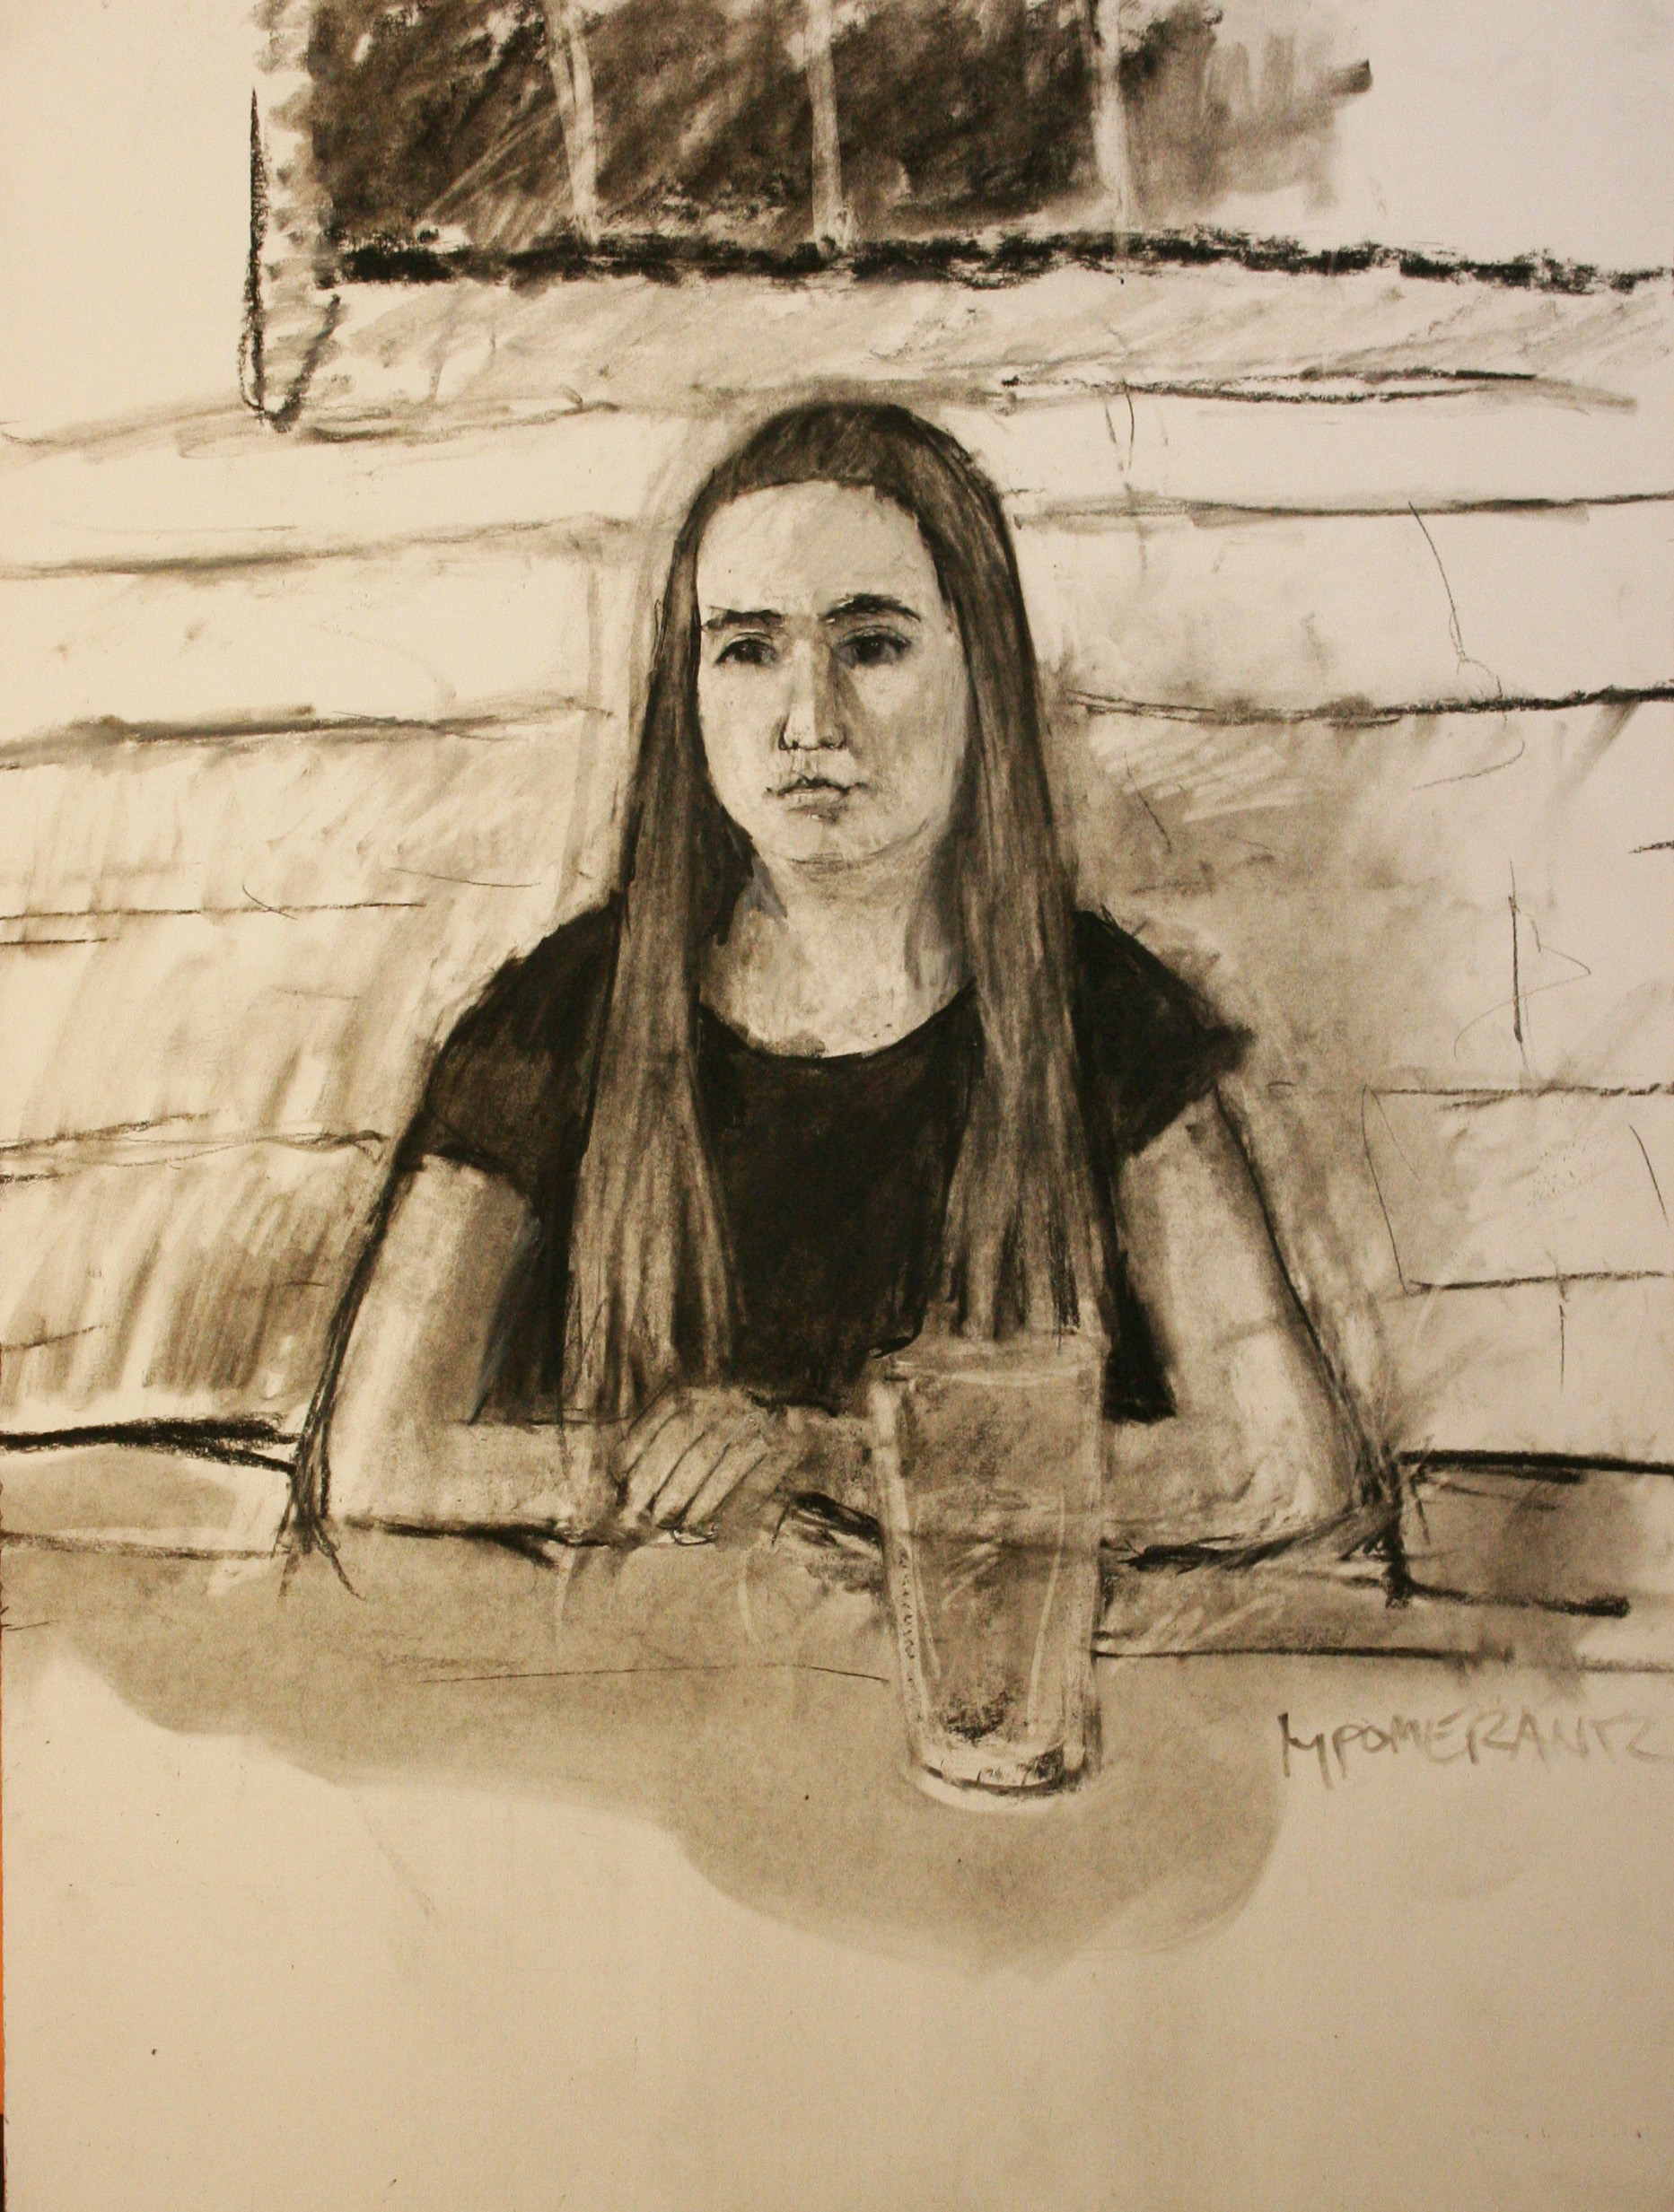 Michael Pomerantz did this charcoal and pastel drawing.